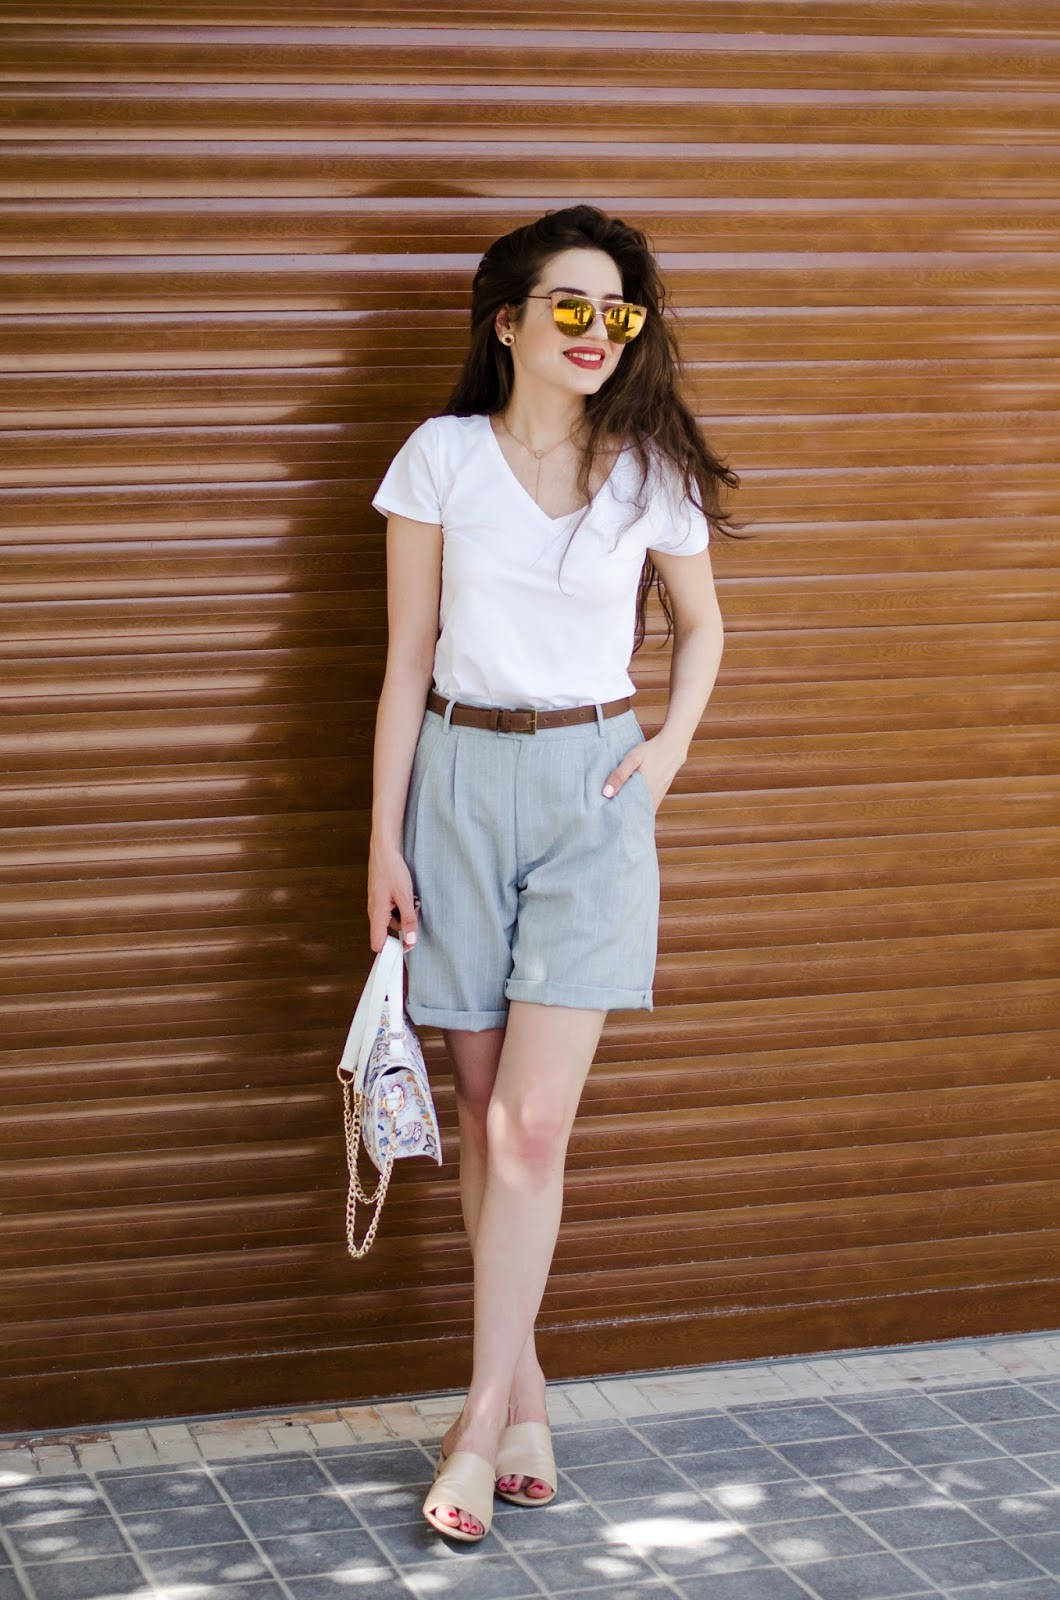 fashion blogger diyorasnotes diyora beta summer outfit 2017 basic lookoftheday shorts white t-shirt how to style short for hot days mules